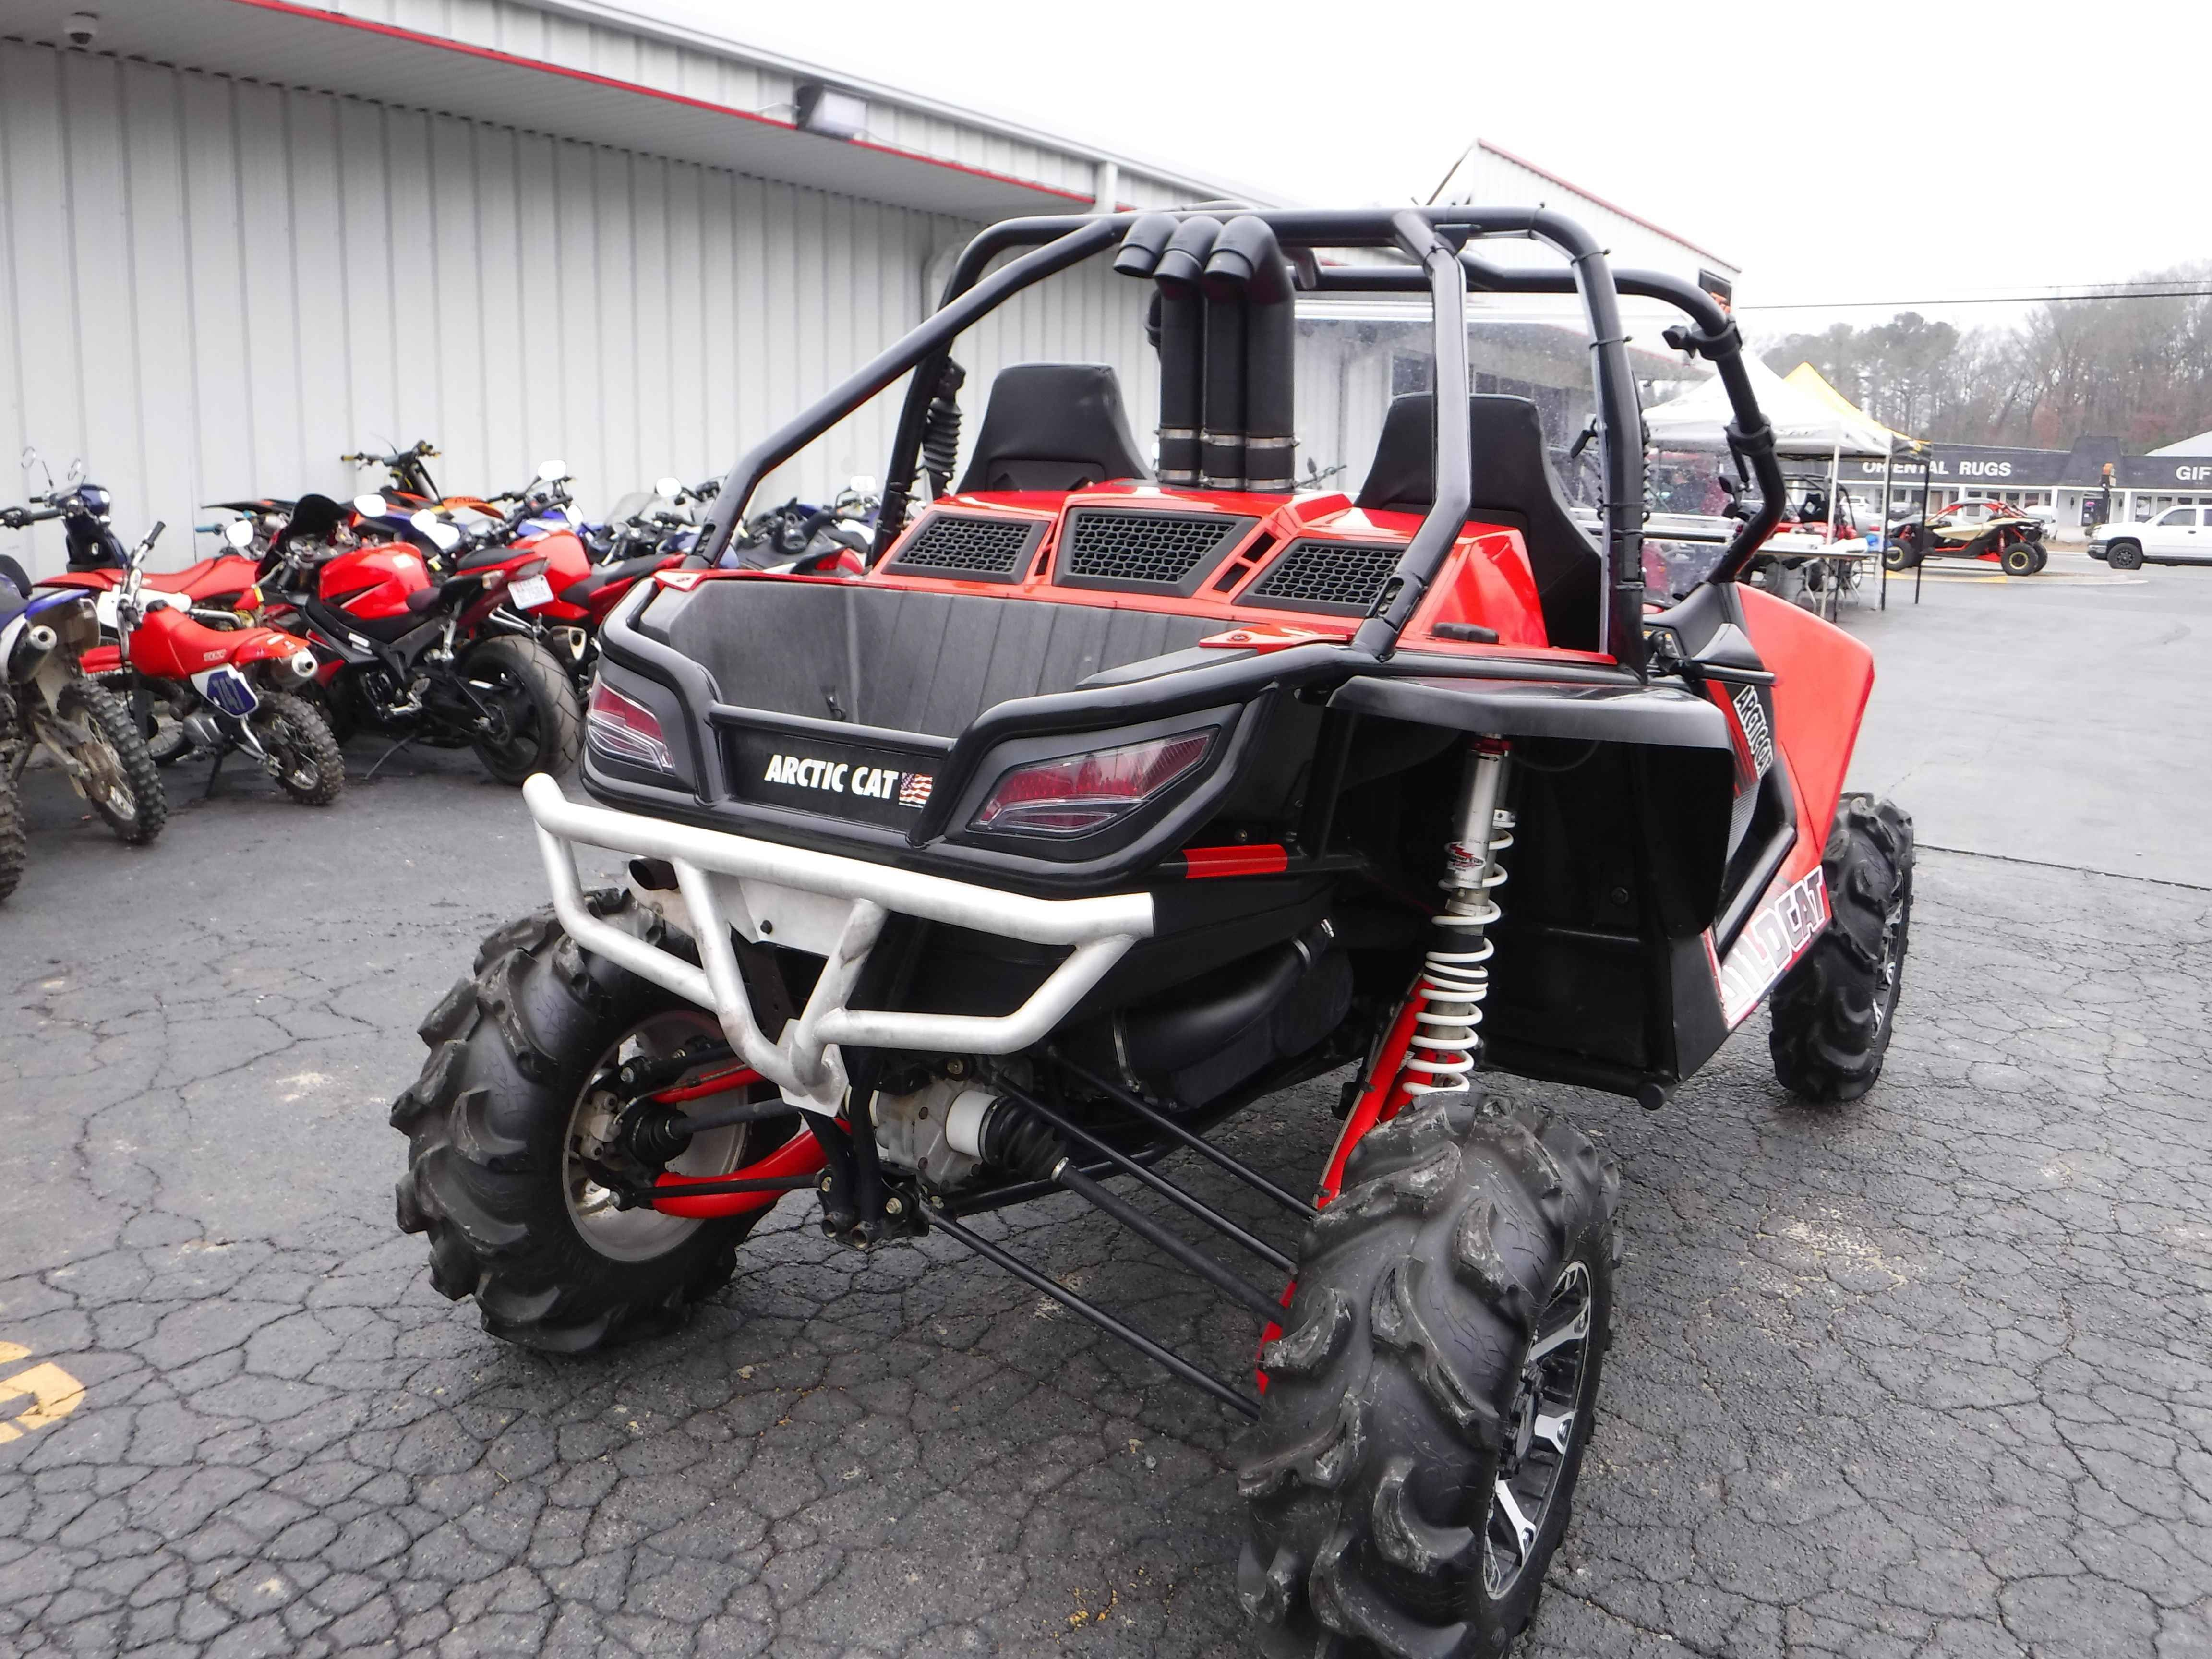 Used 2013 arctic cat wildcat 1000 limited walker evans e atvs for sale in north carolina